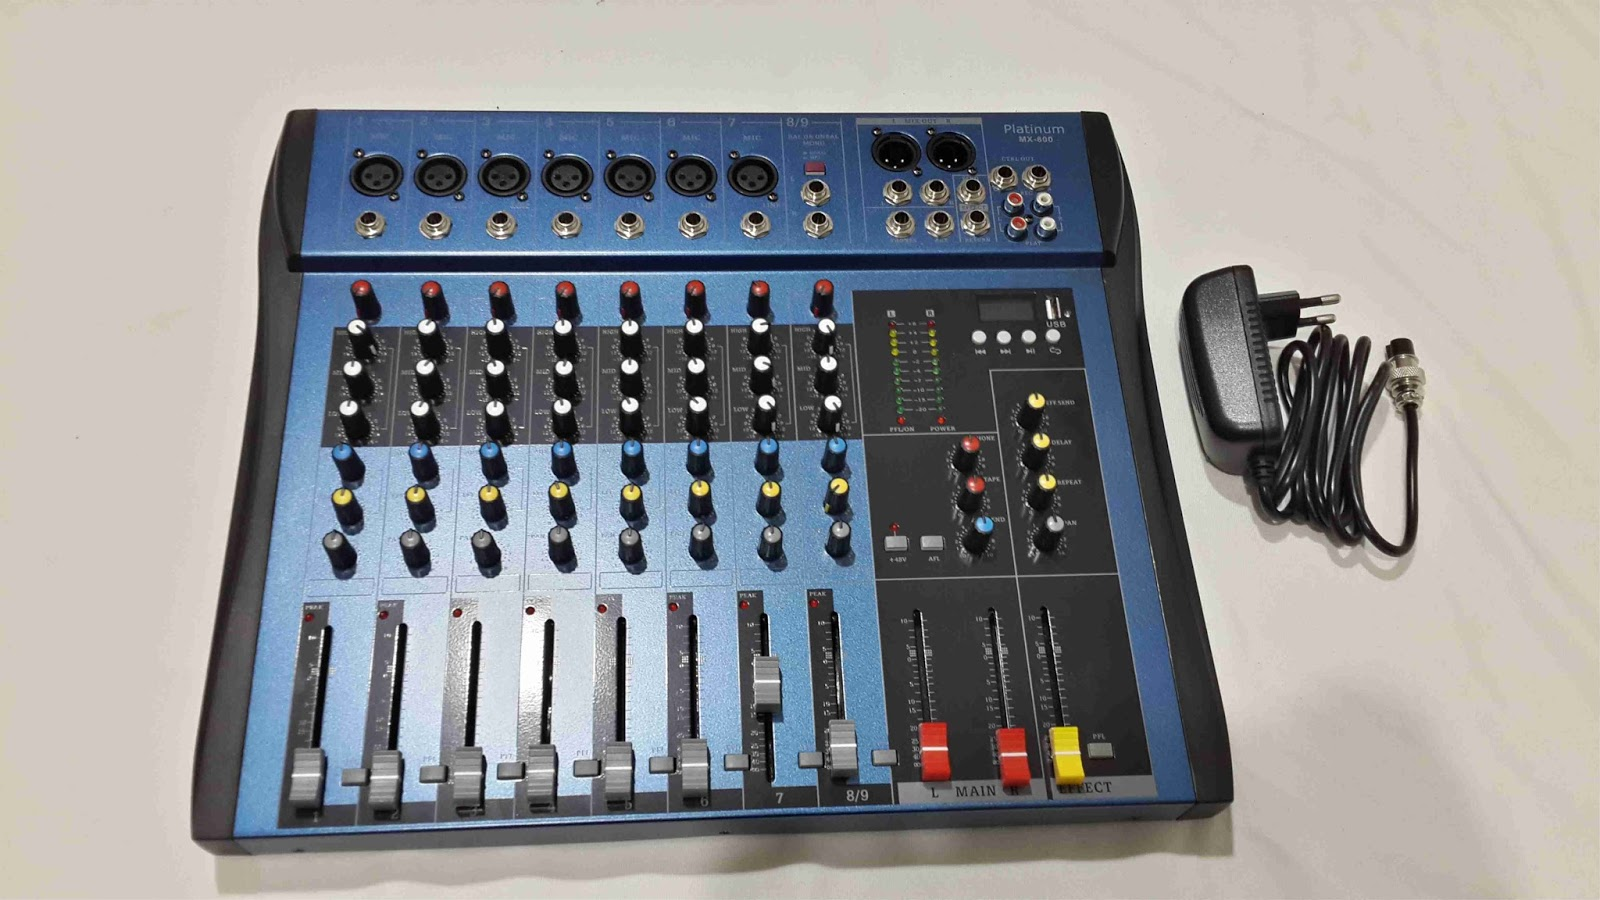 mixer 8 chanel mixer stereo 8 ch mixer analog 8 channel distributor dealer toko jual toa. Black Bedroom Furniture Sets. Home Design Ideas